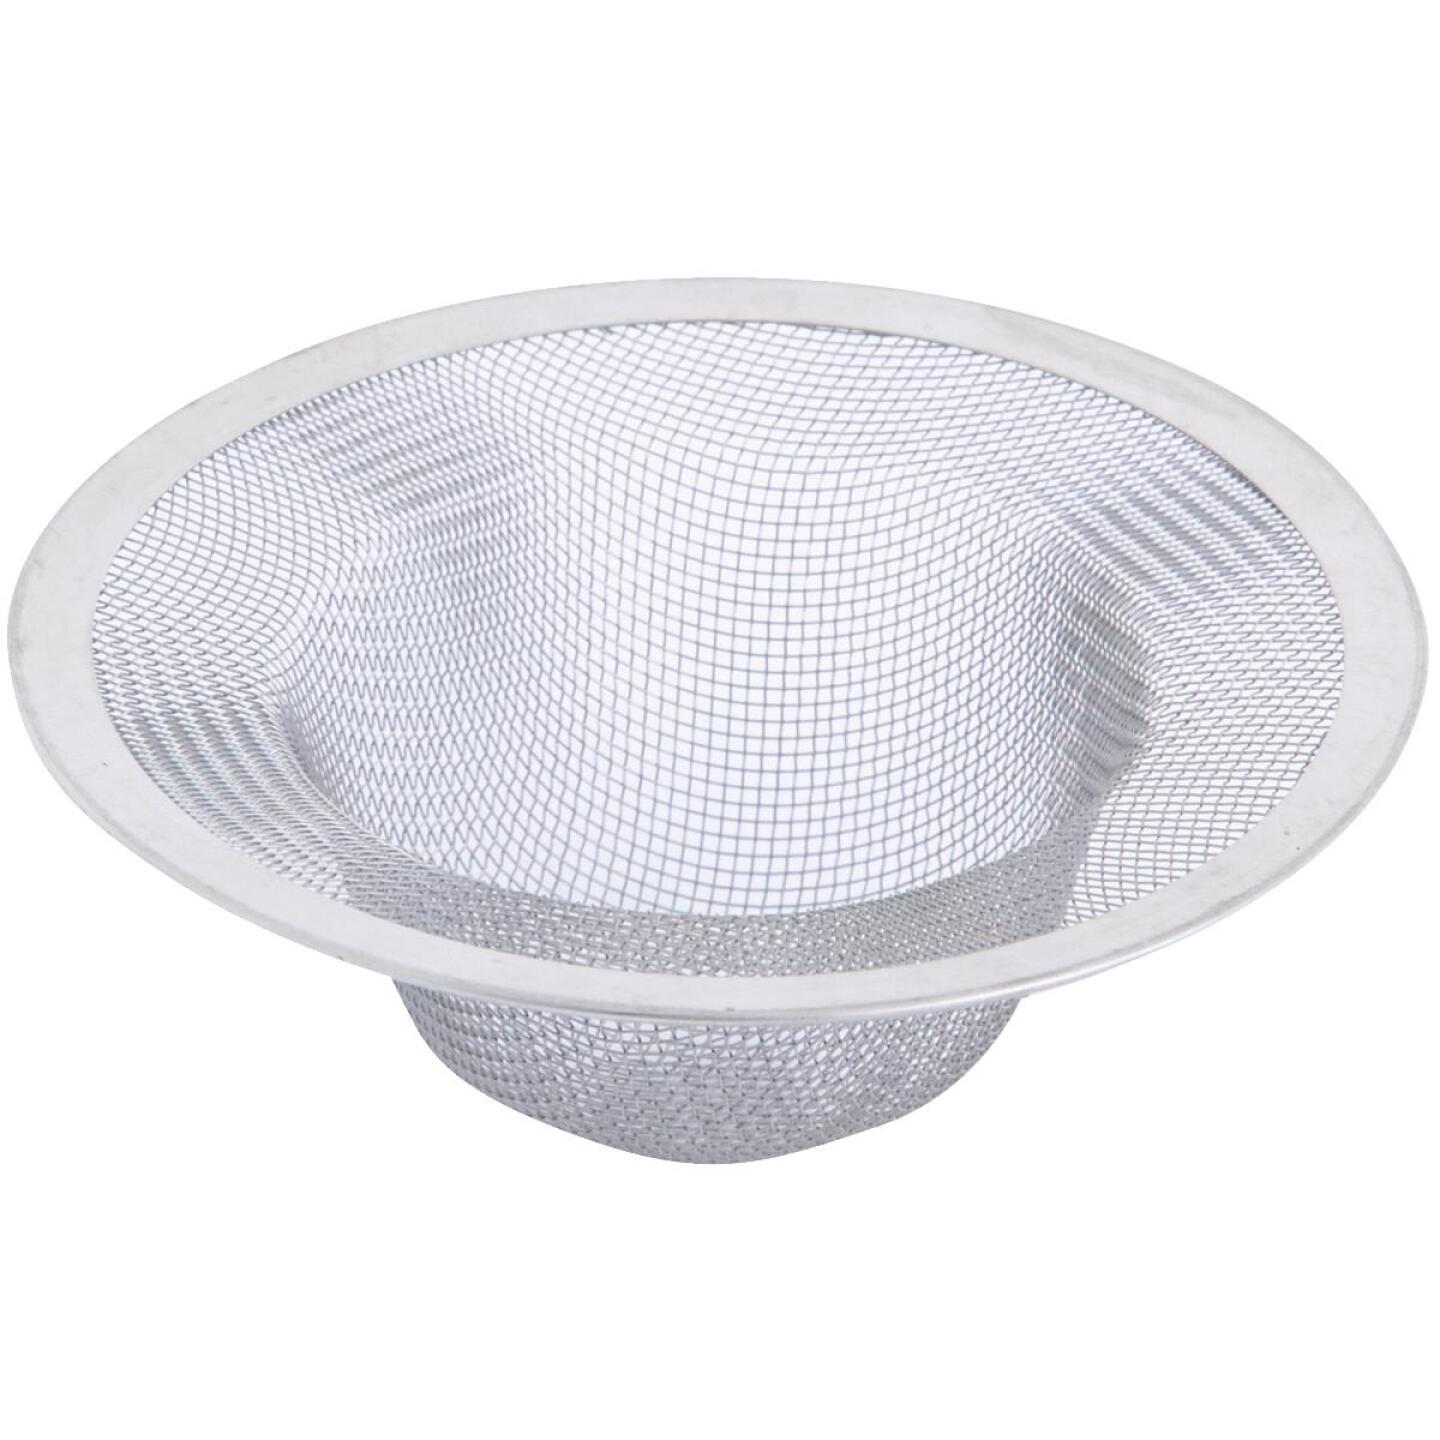 Danco 4-1/2 In. Stainless Steel Mesh Kitchen Sink Strainer Cup  Image 1